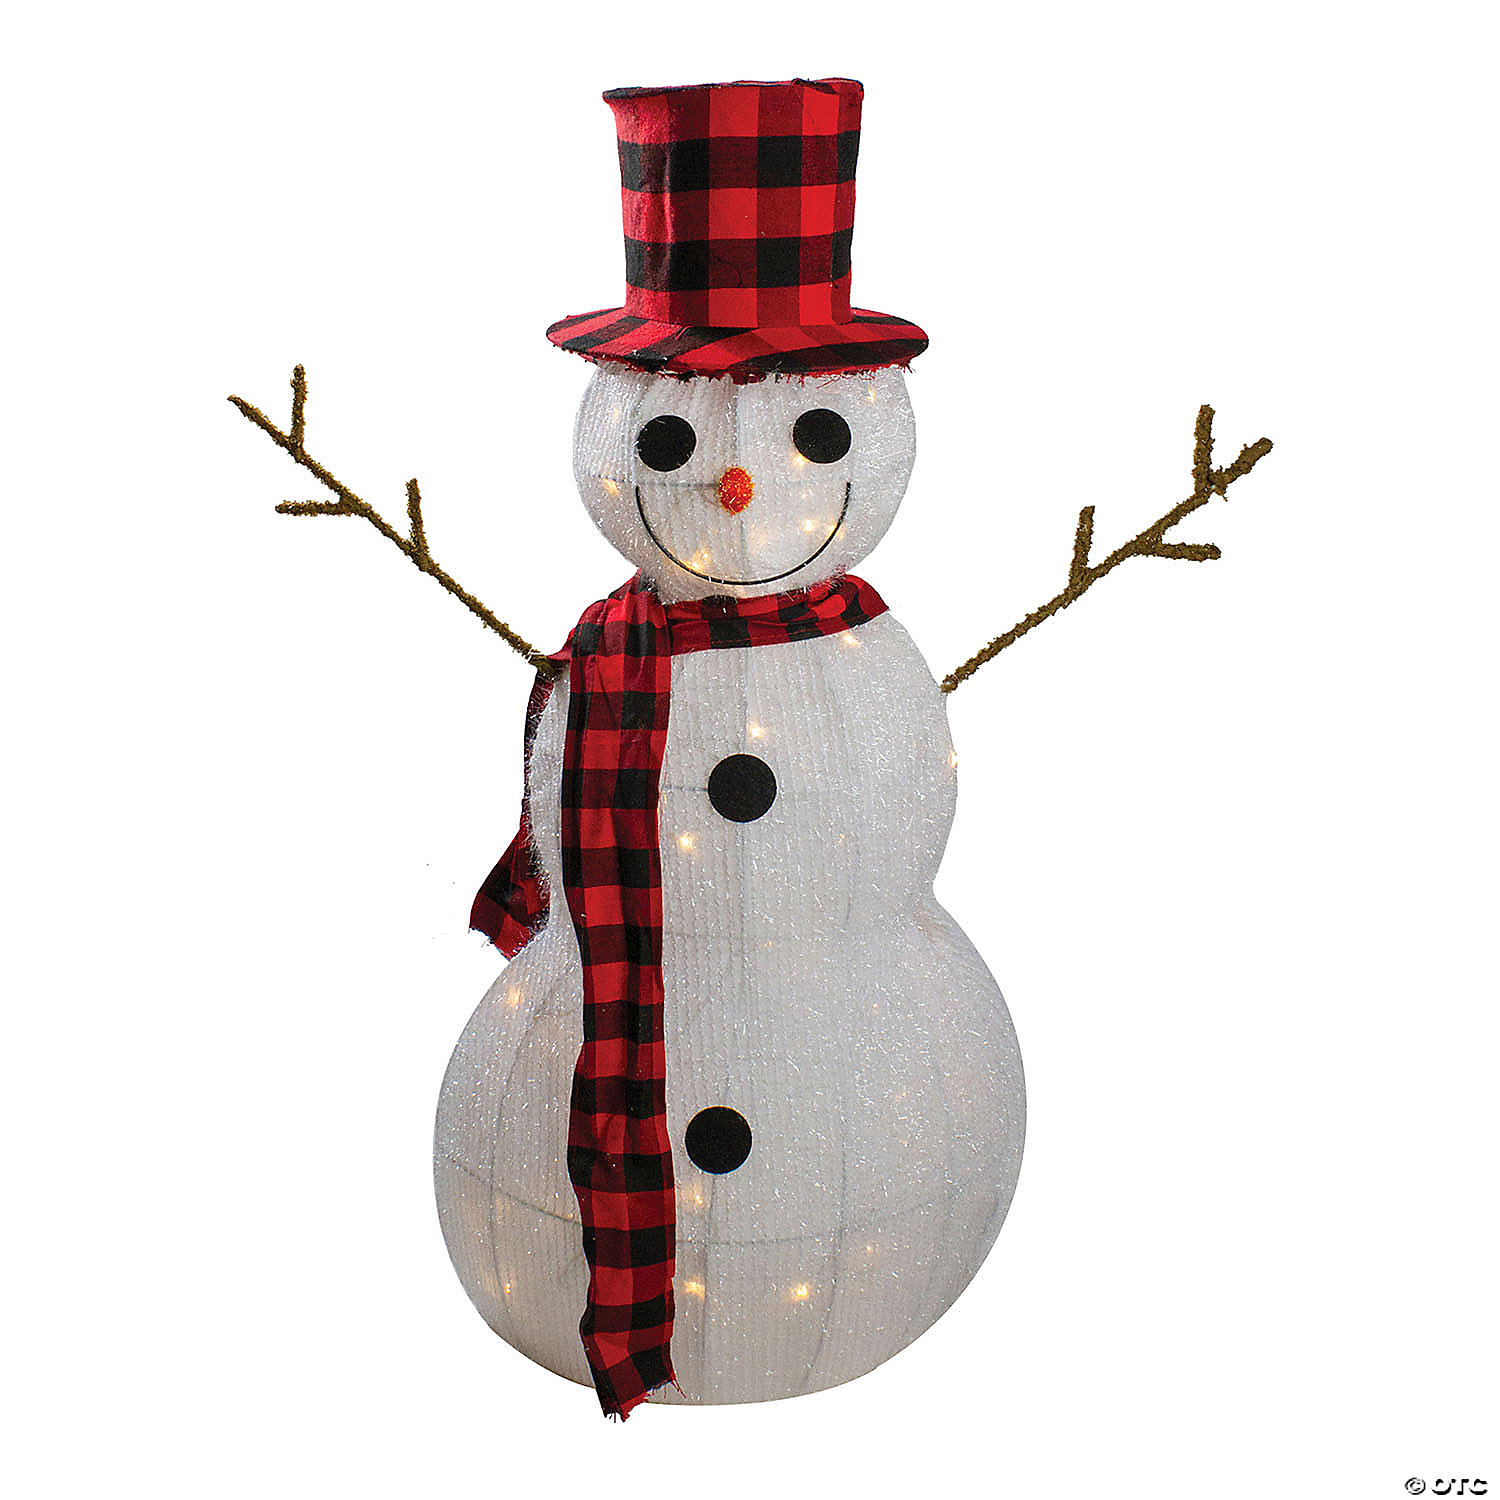 Northlight 35 Lighted 3 D Snowman With Top Hat And Twig Arms Outdoor Christmas Decoration Oriental Trading